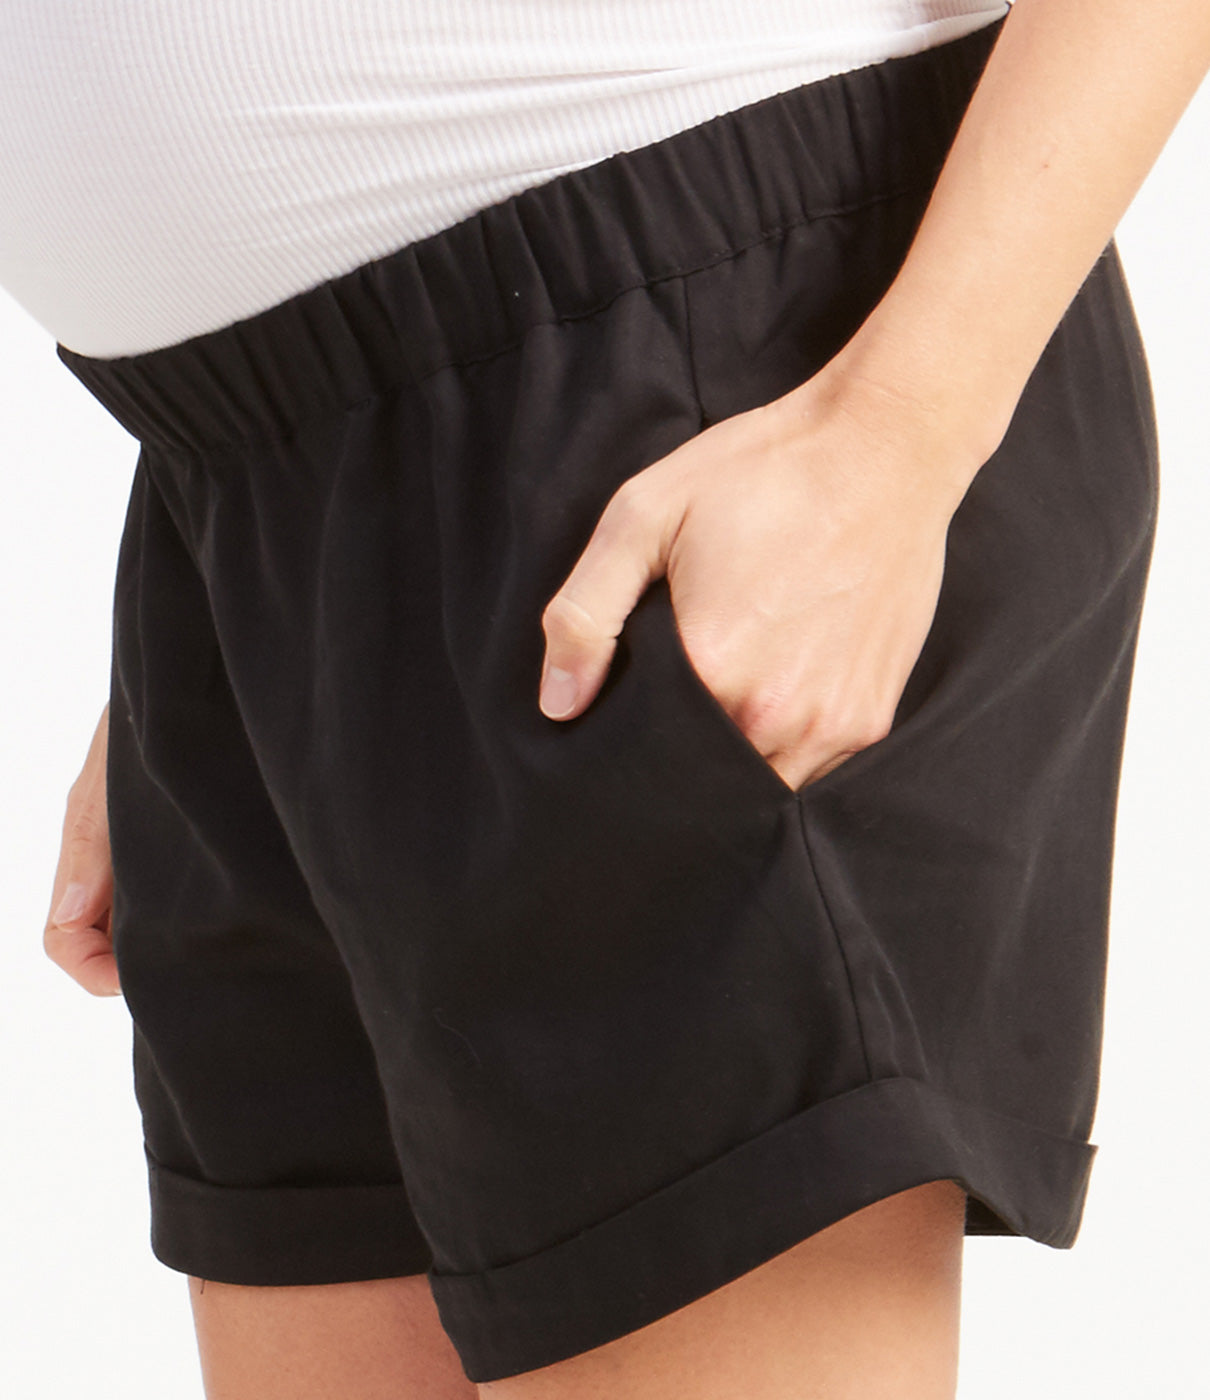 FASHION + FUNCTIONWith cuffs that flatter, these shorts have functional pockets to stash your stuff.